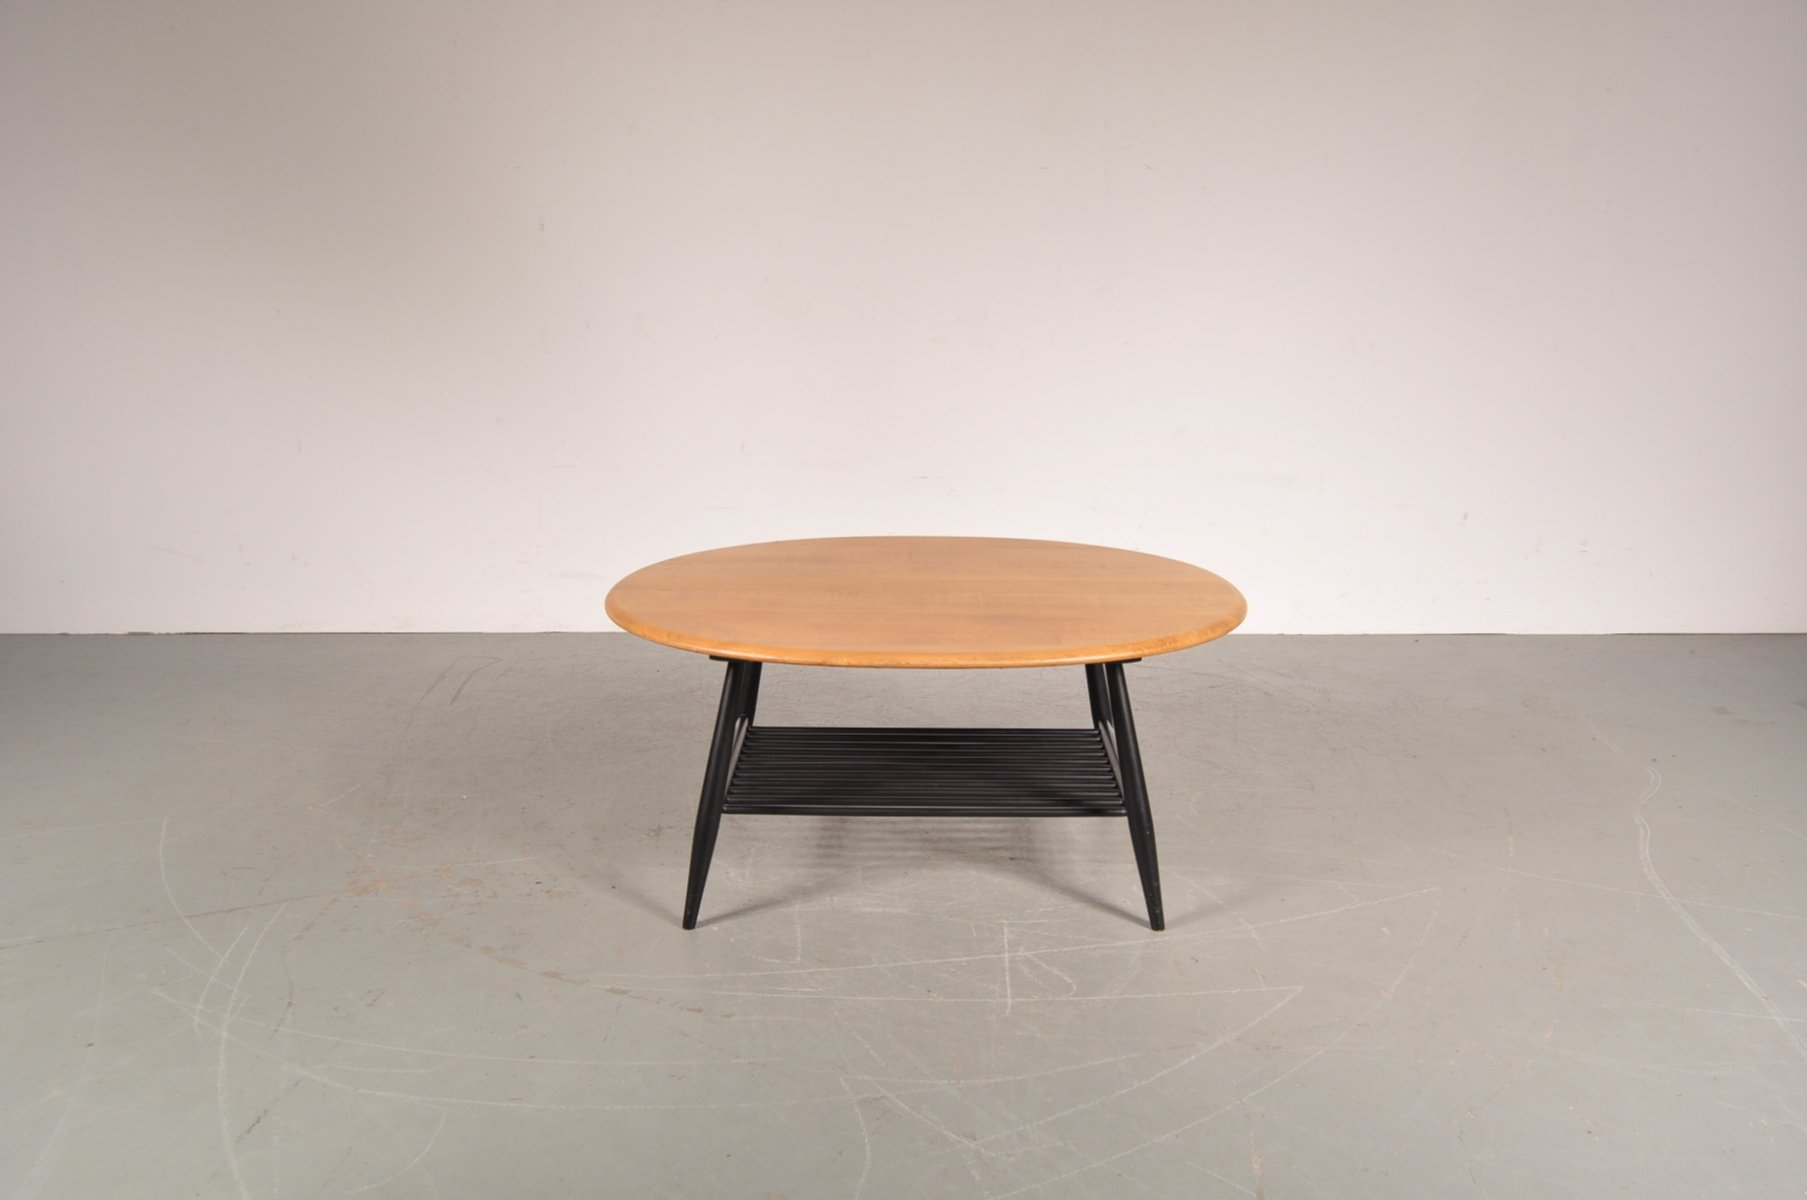 Coffee table with black wooden base by lucian ercolani for ercol 1950s for sale at pamono Black wooden coffee tables